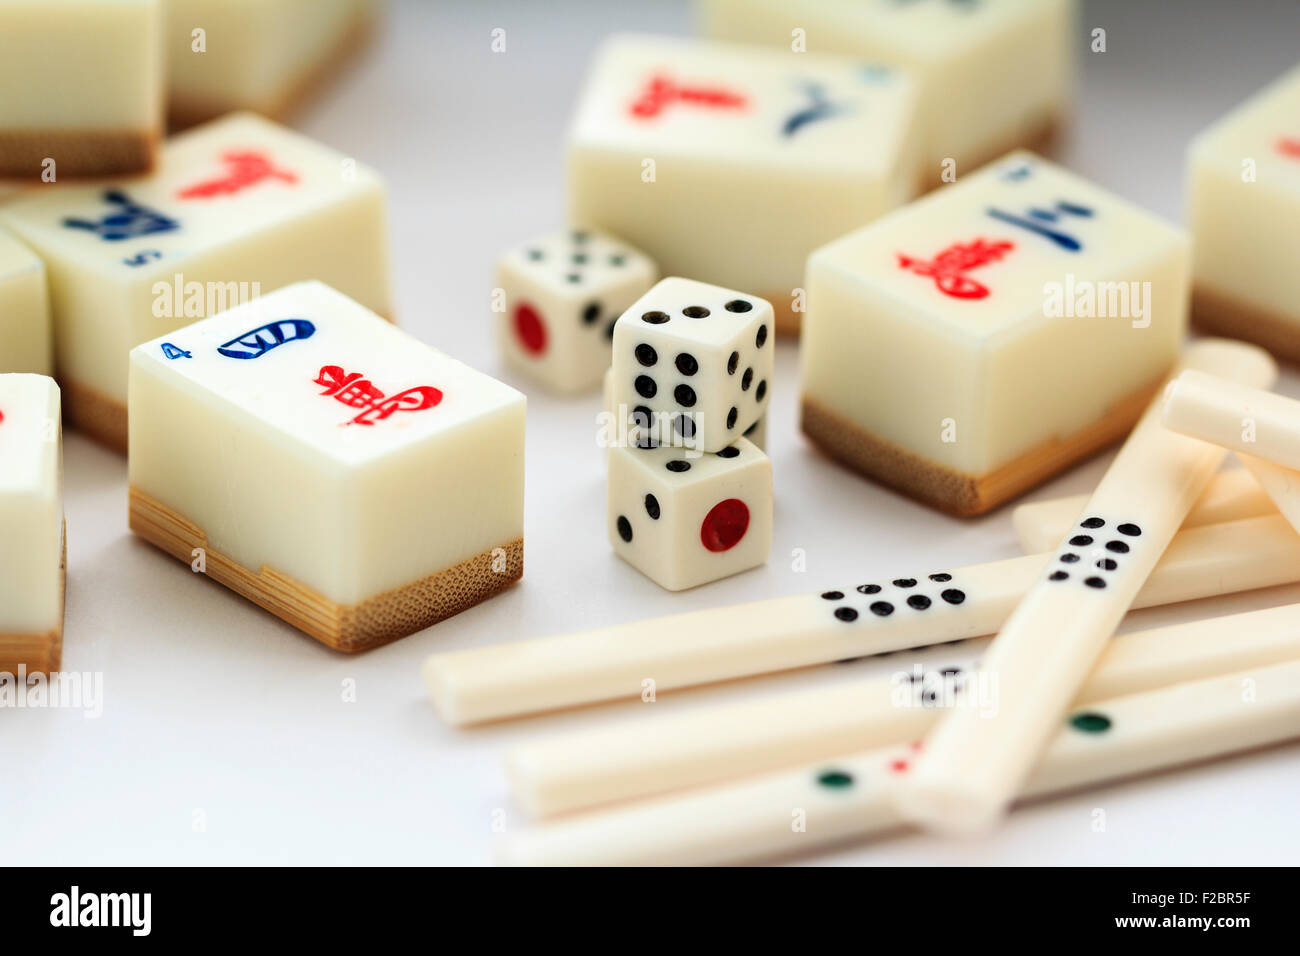 Malaysia or Singapore, Mahjong set, some scattered tiles and dice with counters - Stock Image